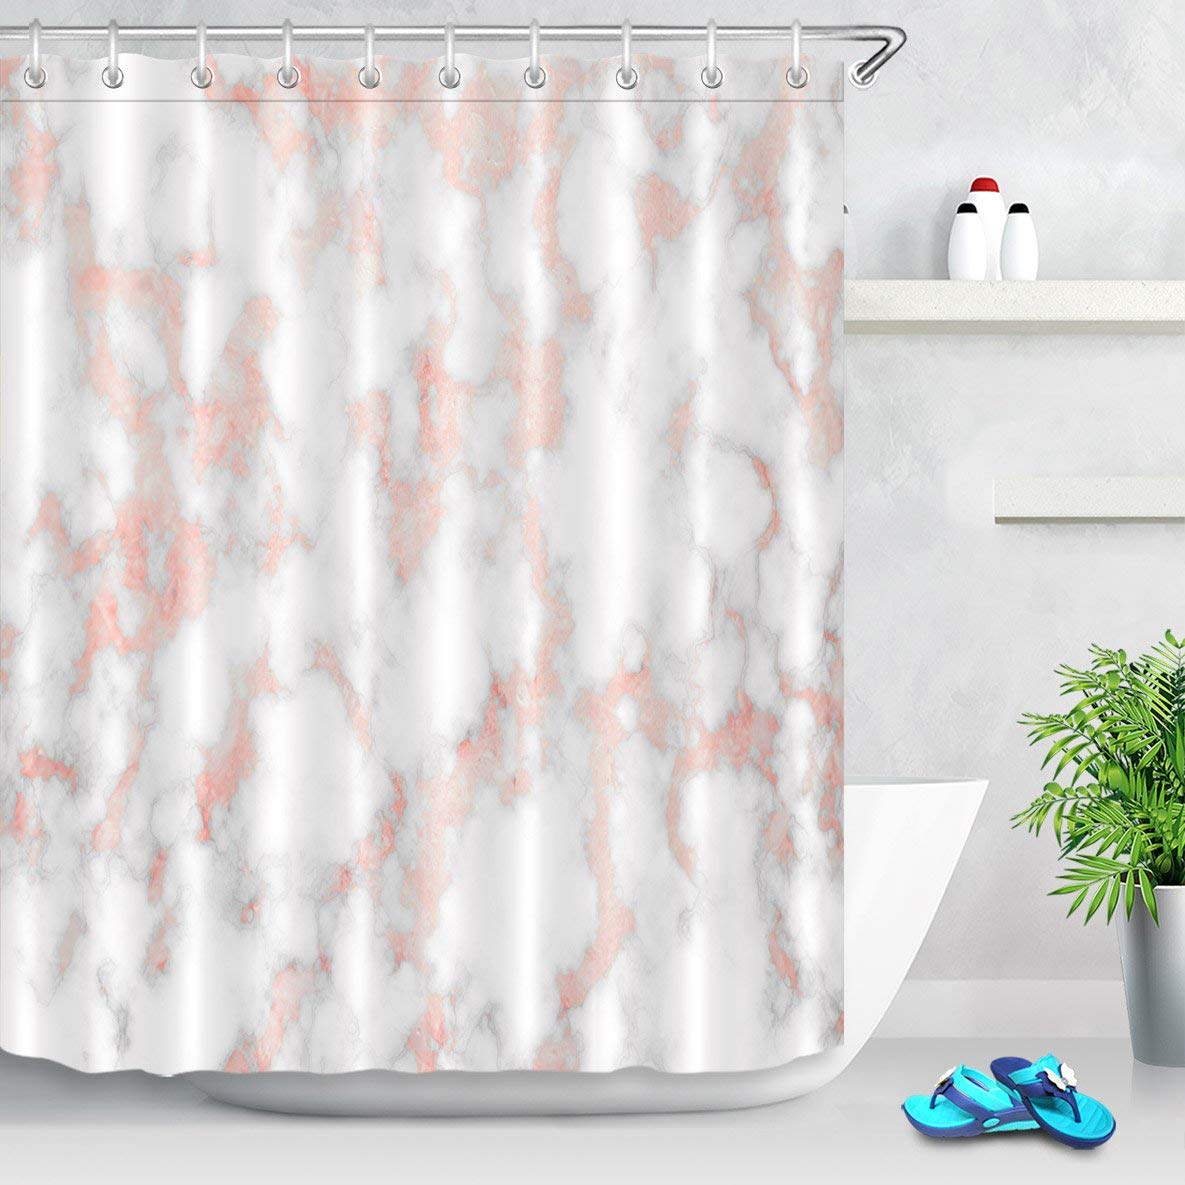 Lb Rose Gold Marble Shower Curtain Set Fashion Pink Metal Marble With Mineral Ink Texture Trendy Bathroom Curtain 72x72 Inch Polyester Fabric With 12 Hooks